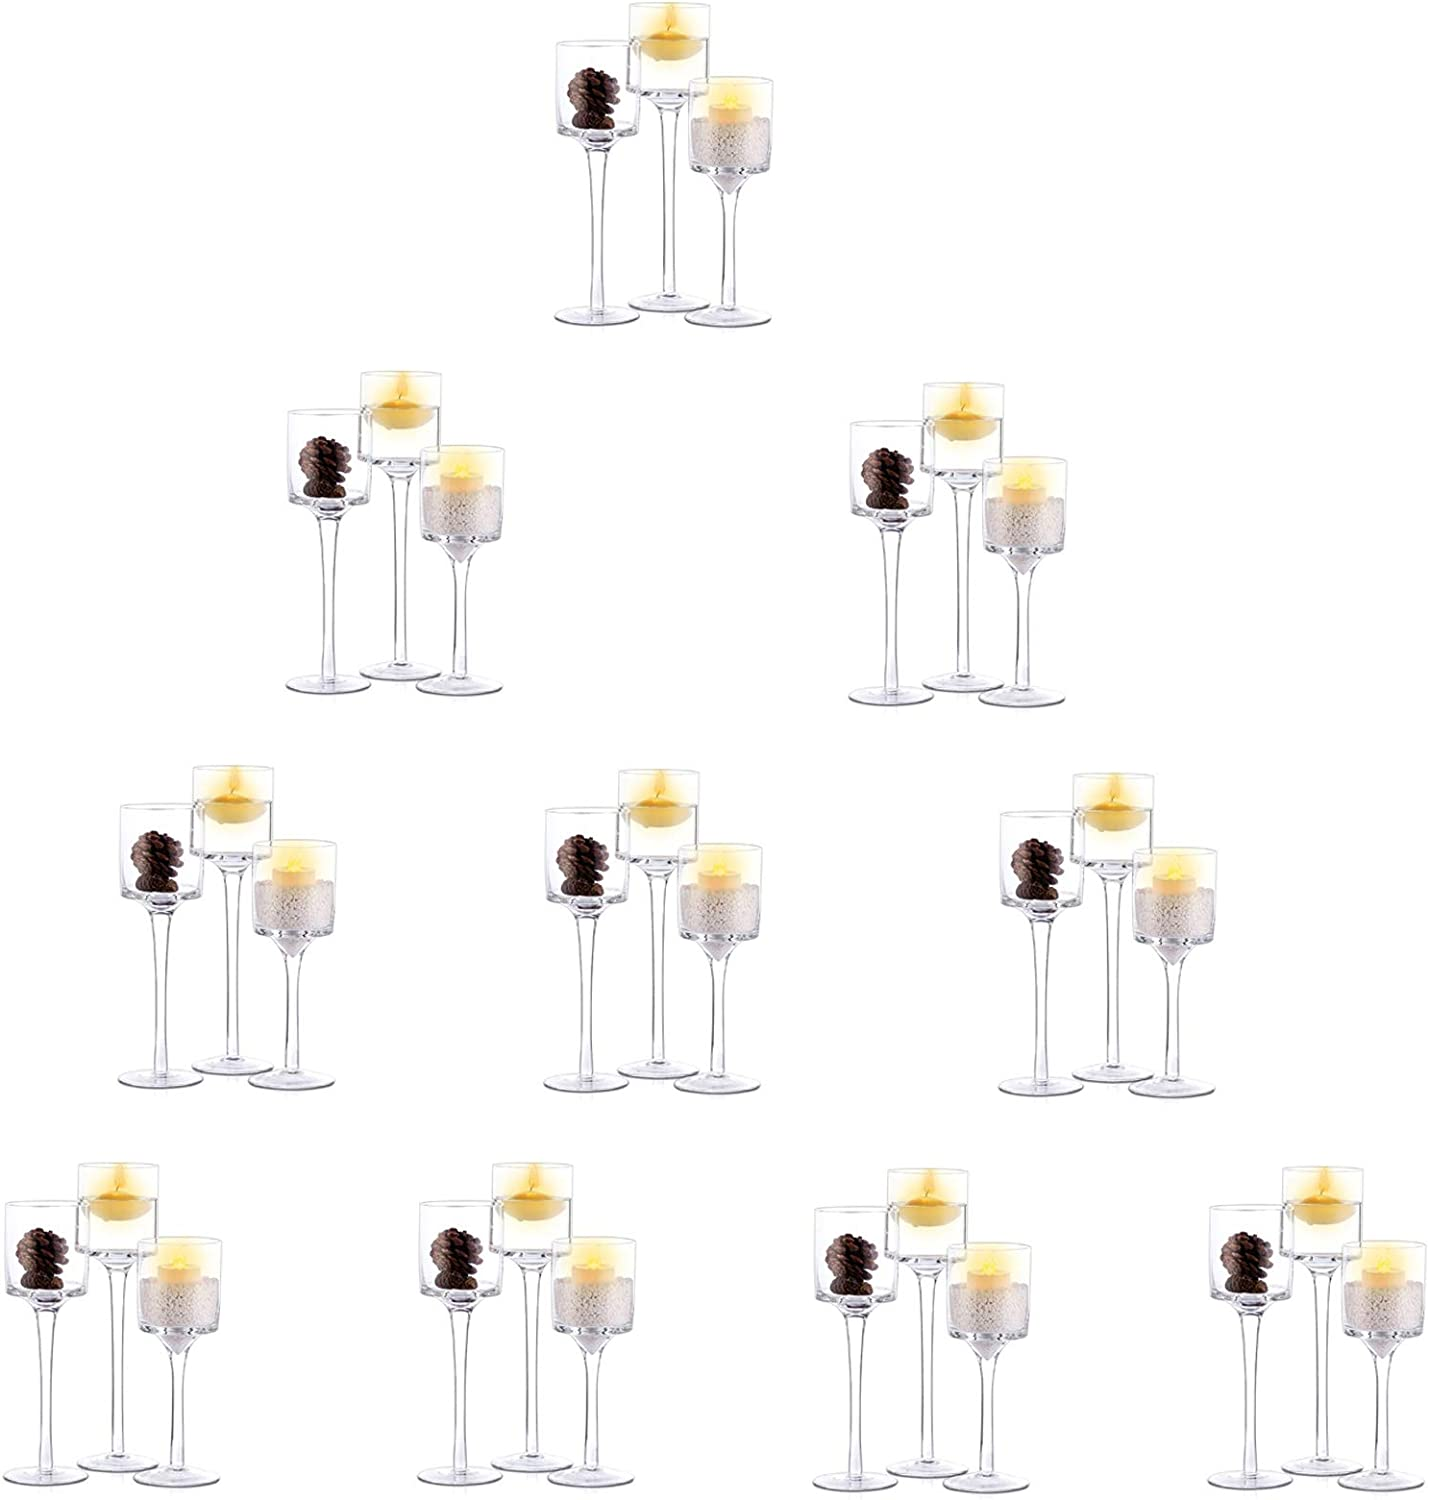 Nuptio 10 Sets (30 Pcs) Candlestick & Tealight Candle Holders, Tall Elegant Glass Stylish Design, Ideal for Weddings, Home Decor, Parties, Table Settings & Gifts